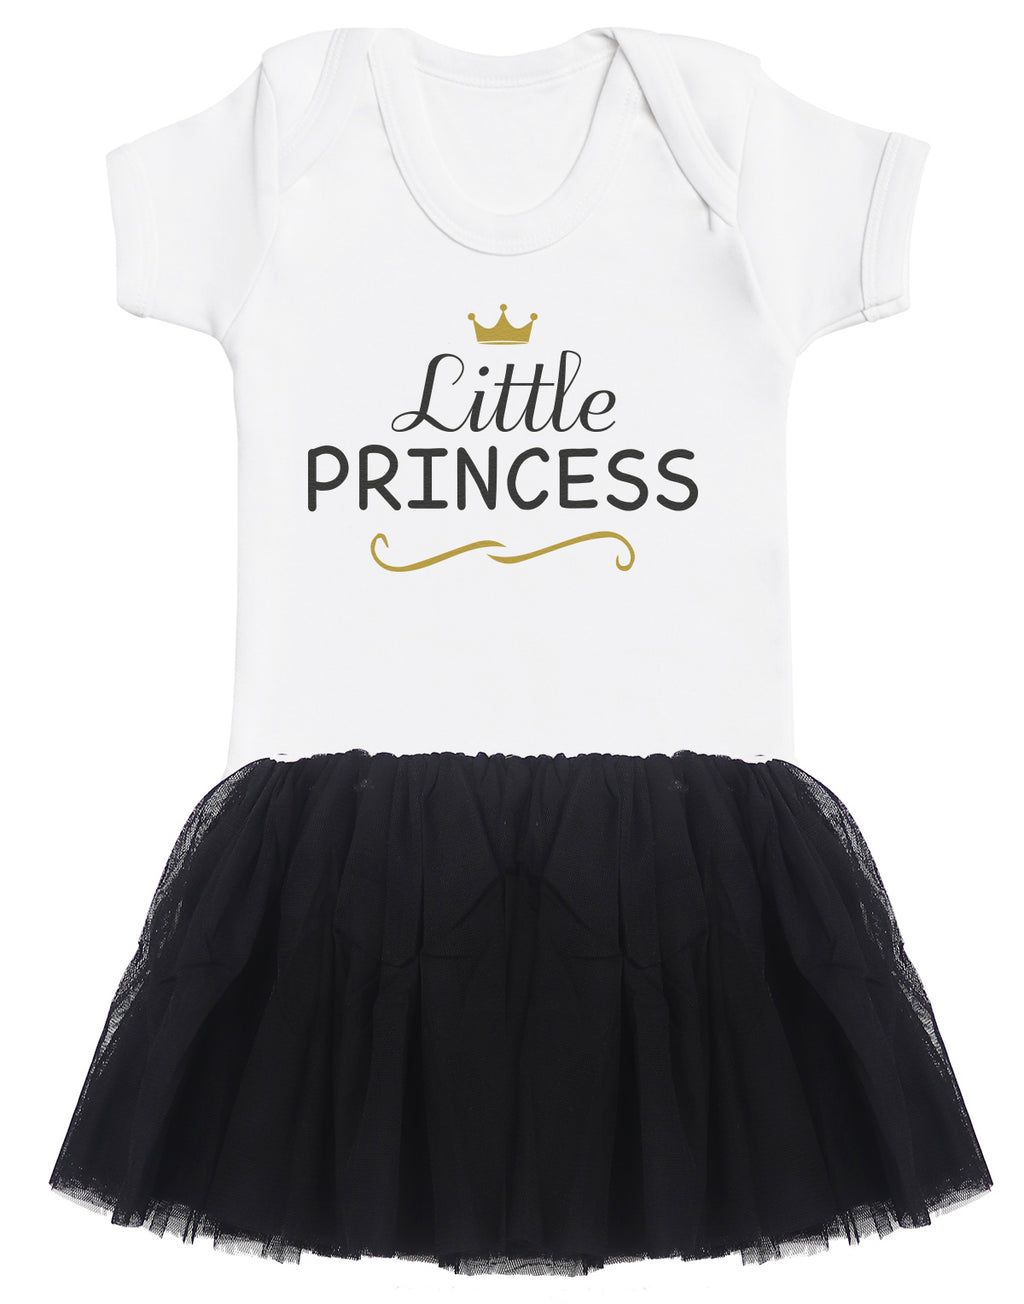 Little Princess Baby Bodysuit and Black Tutu Set